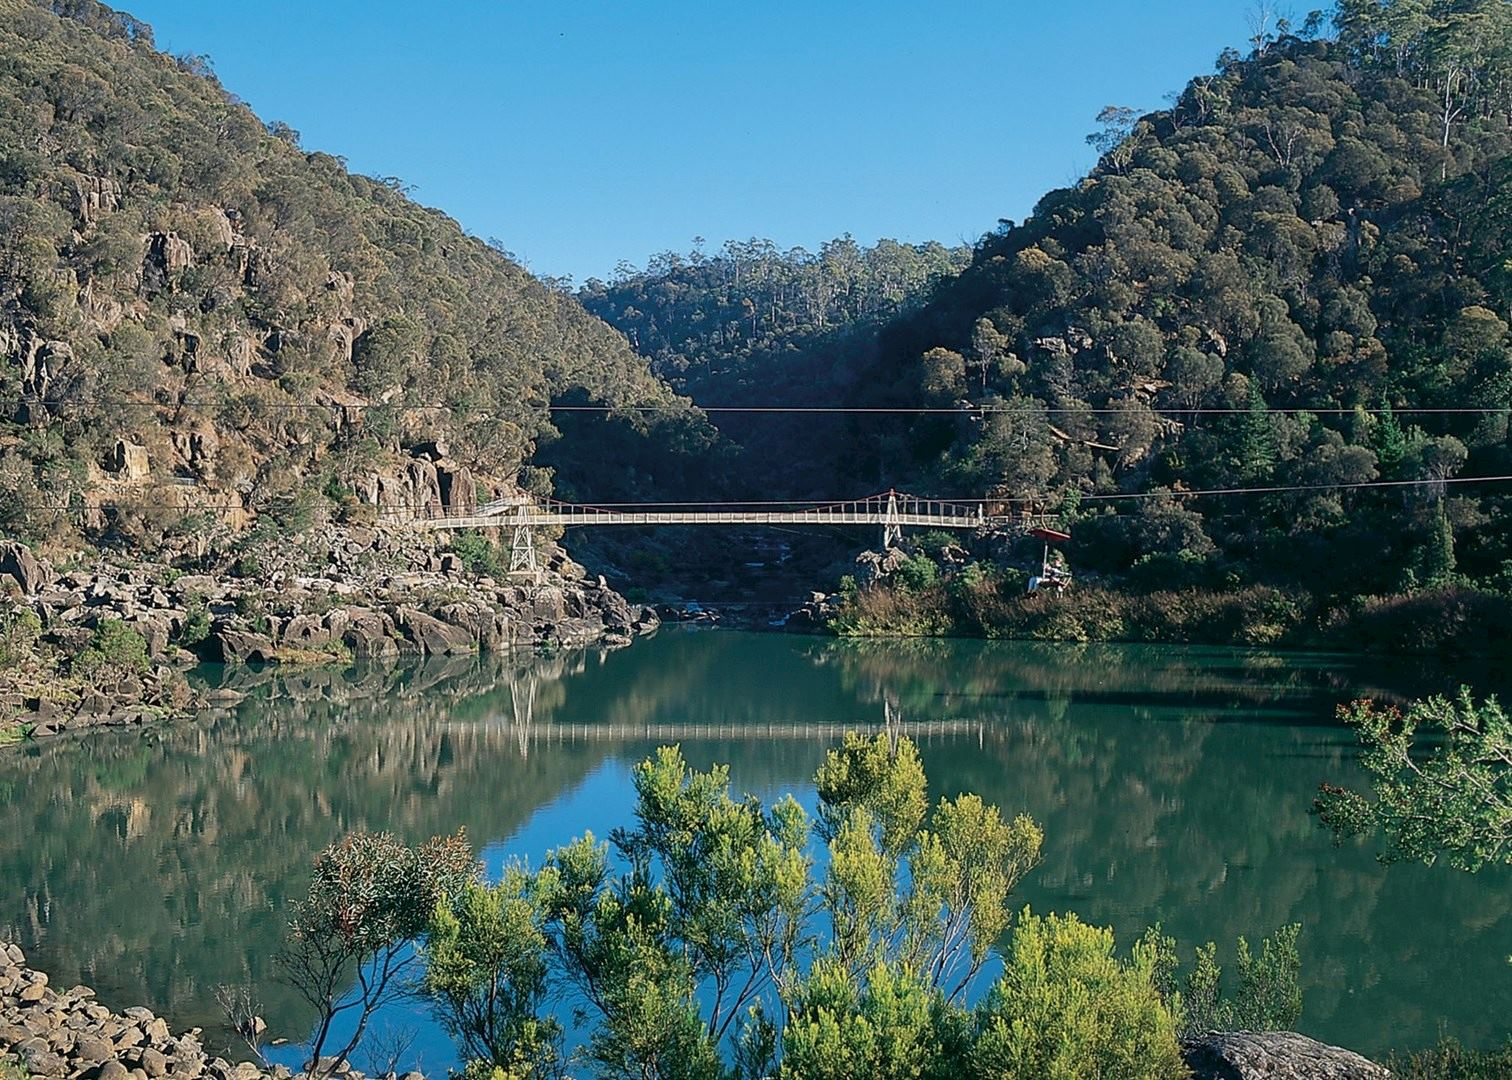 Launceston Australia  city photos gallery : Cataract Gorge, Launceston, Australia